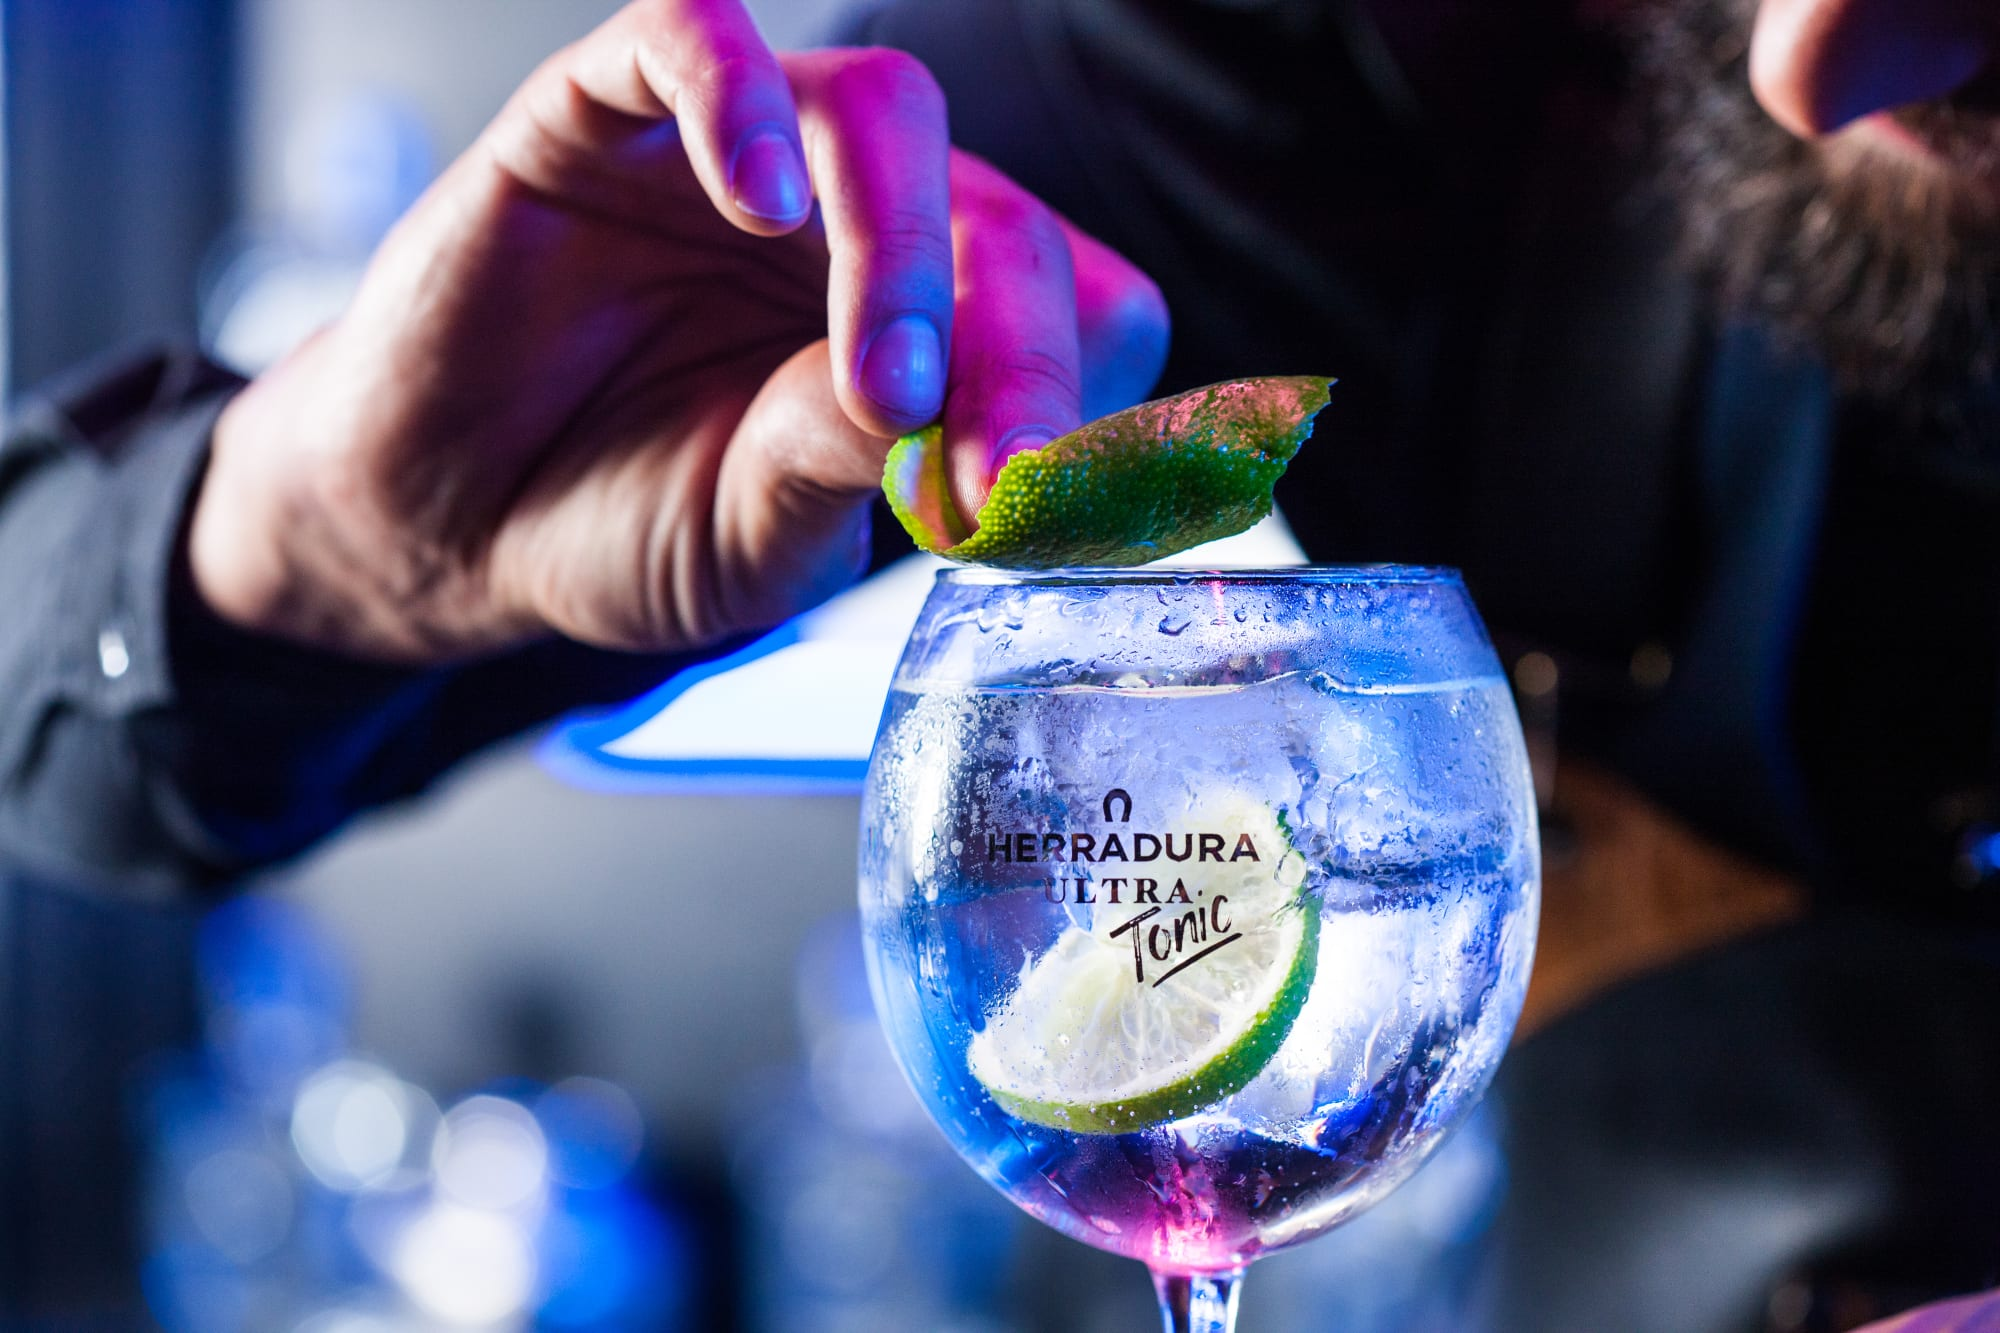 Tequila Ultra Tonics Shake Up Flavorful Cocktails photo